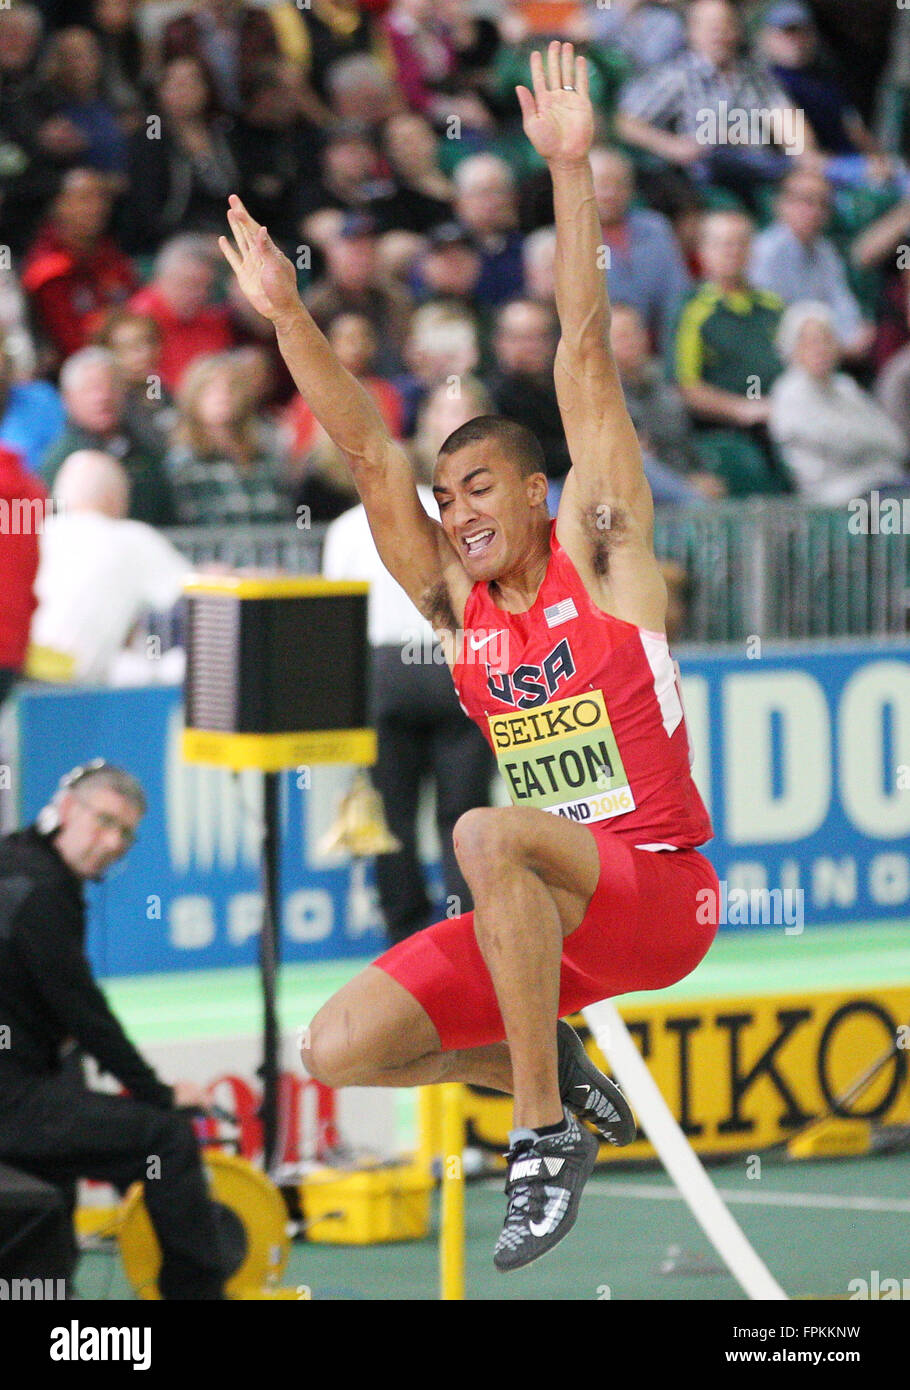 Portland, Oregon, USA. March 18, 2016: Ashton Eaton competes in the long jump portion of the Men's Heptathlon - Stock Image